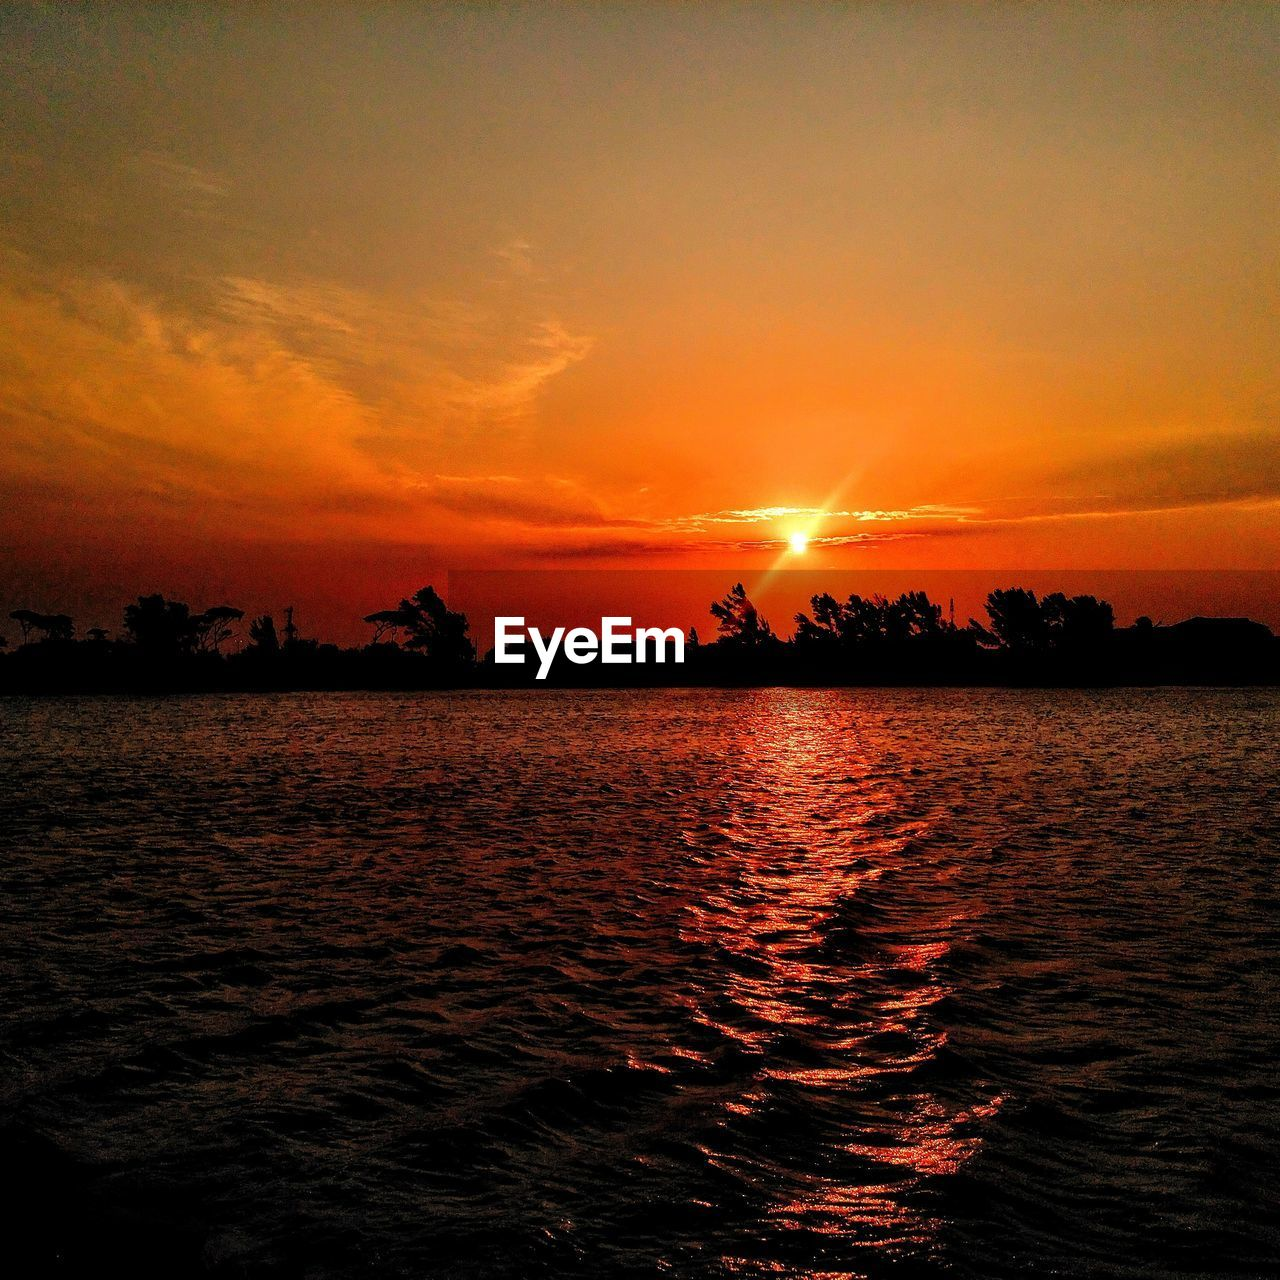 sunset, sky, beauty in nature, orange color, water, scenics - nature, tranquility, tranquil scene, waterfront, sea, silhouette, cloud - sky, idyllic, nature, no people, sun, rippled, outdoors, dramatic sky, romantic sky